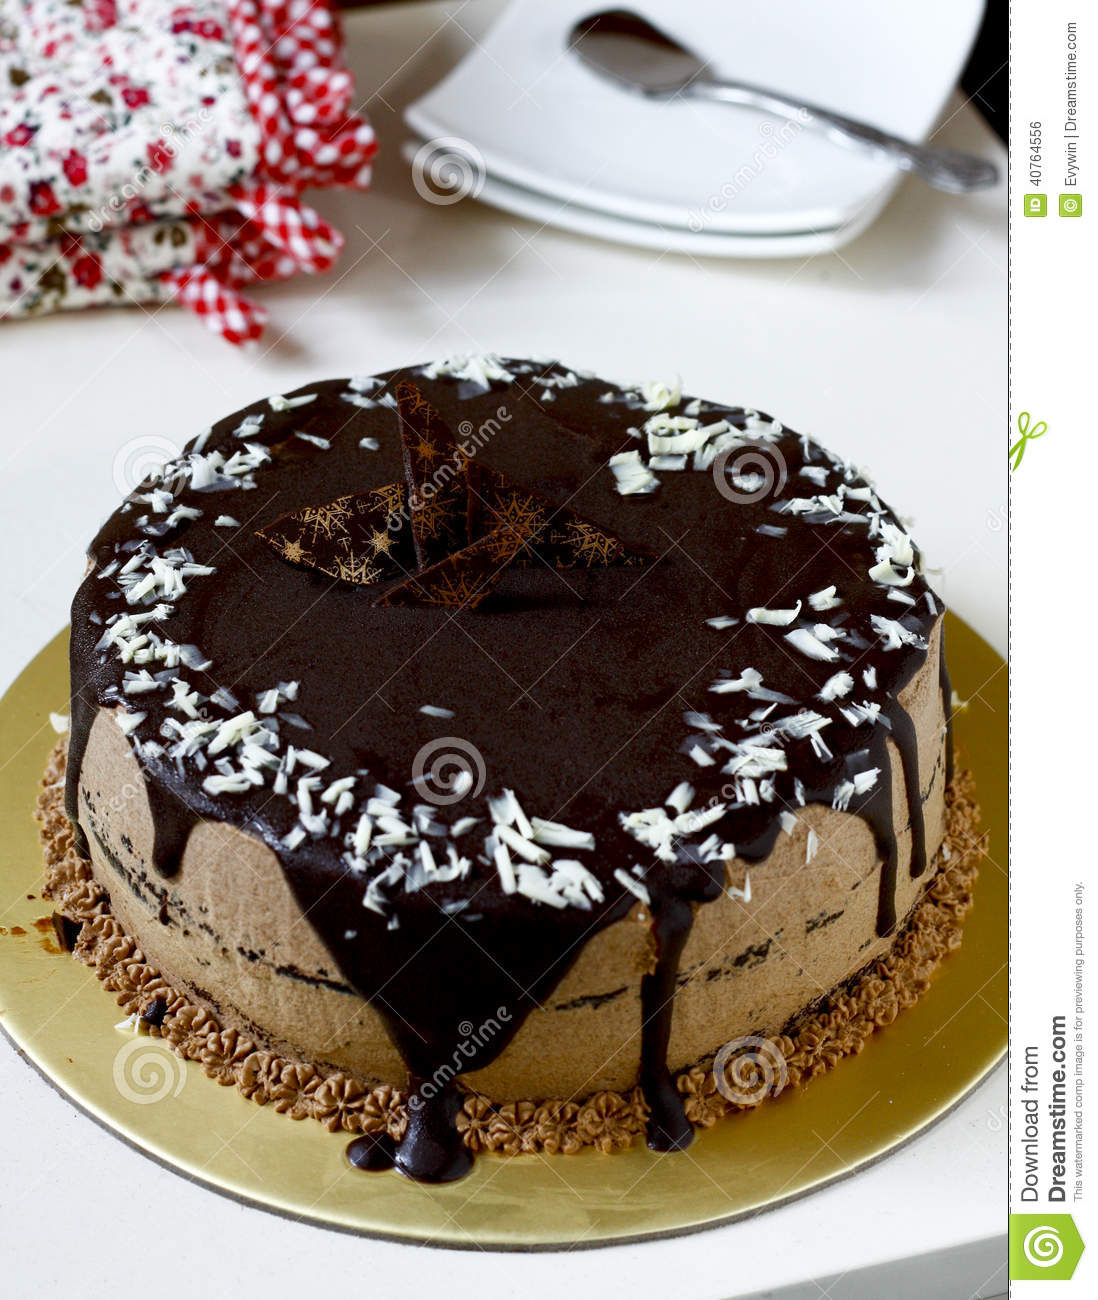 Chocolate Cake Stock Photo - Image: 40764556